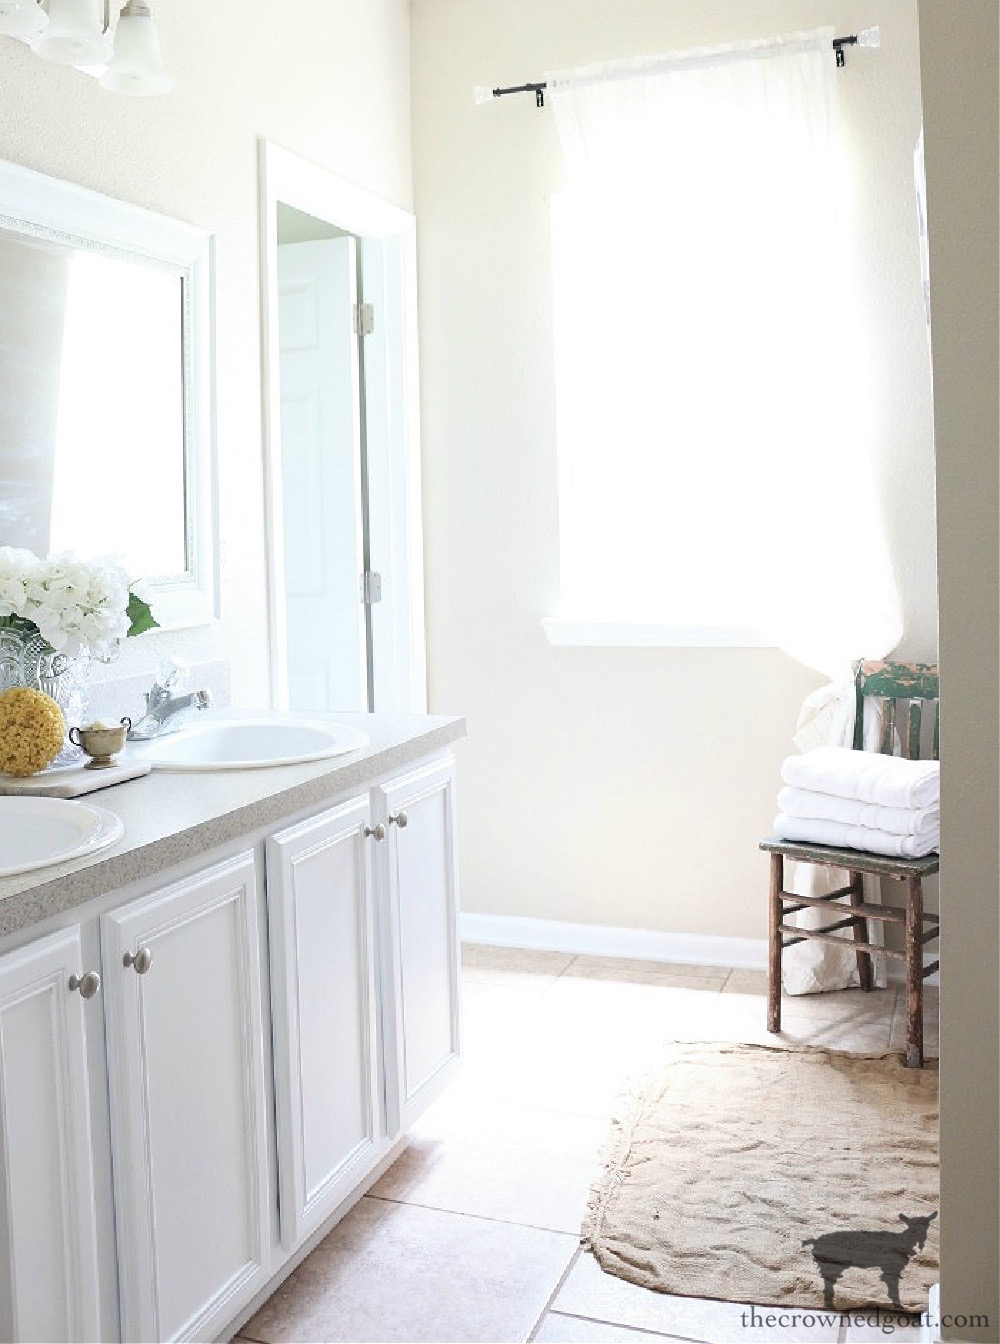 5 Key Spaces to Organize Before School Starts-The Bathroom-The Crowned Goat